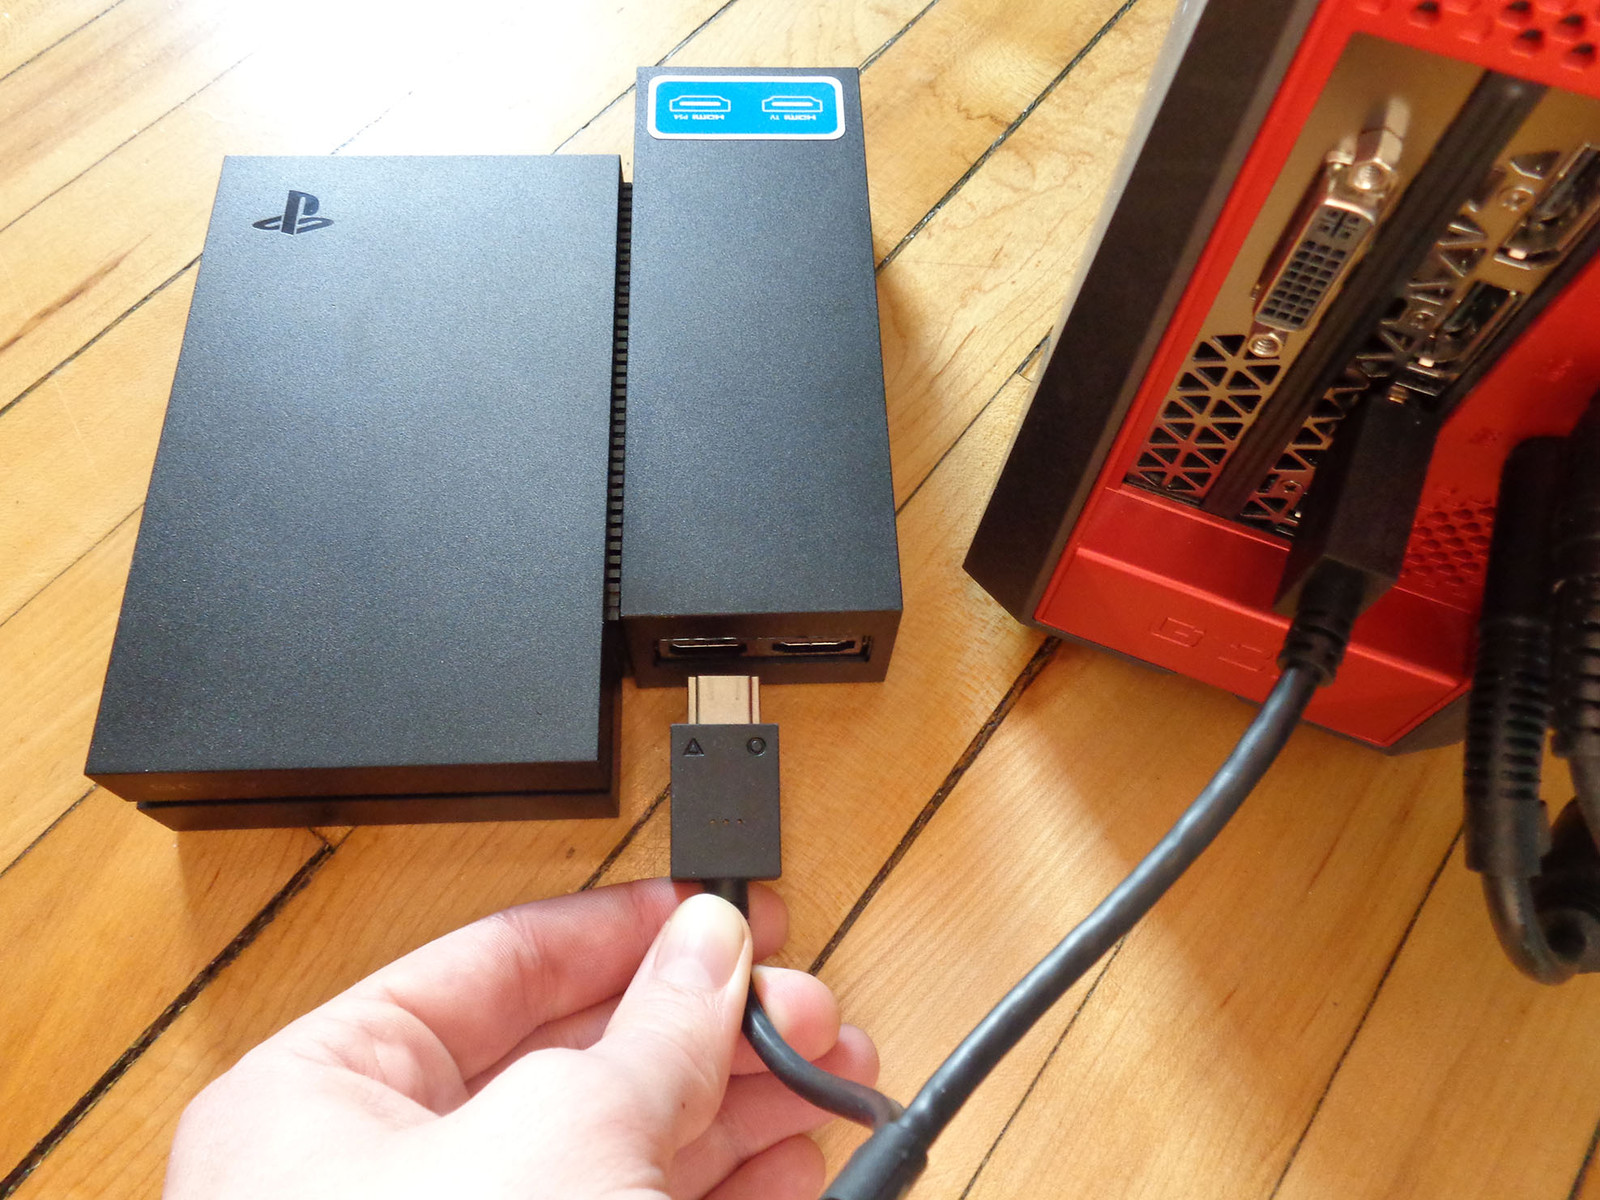 Plug the PSVR power cable into the processing unit.